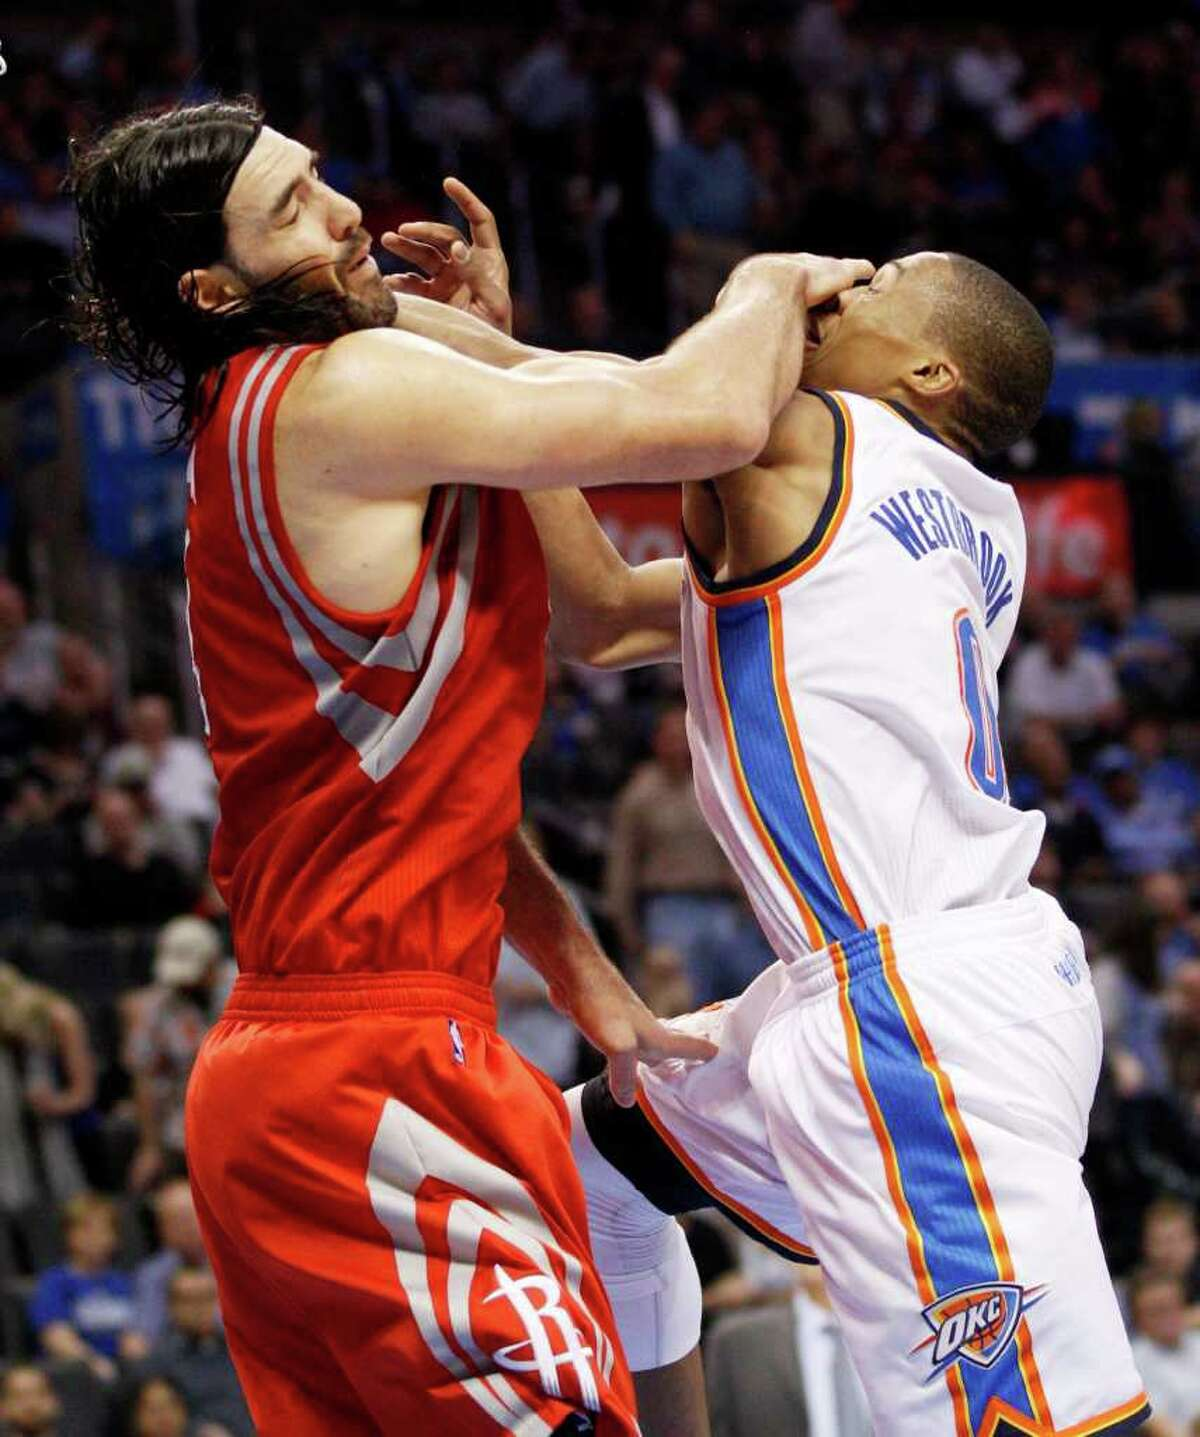 Much like the rebounding confrontation between Luis Scola, left, and Thunder guard Russell Westbrook, the Rockets went toe-to-toe with the Western Conference's top team and emerged a winner.